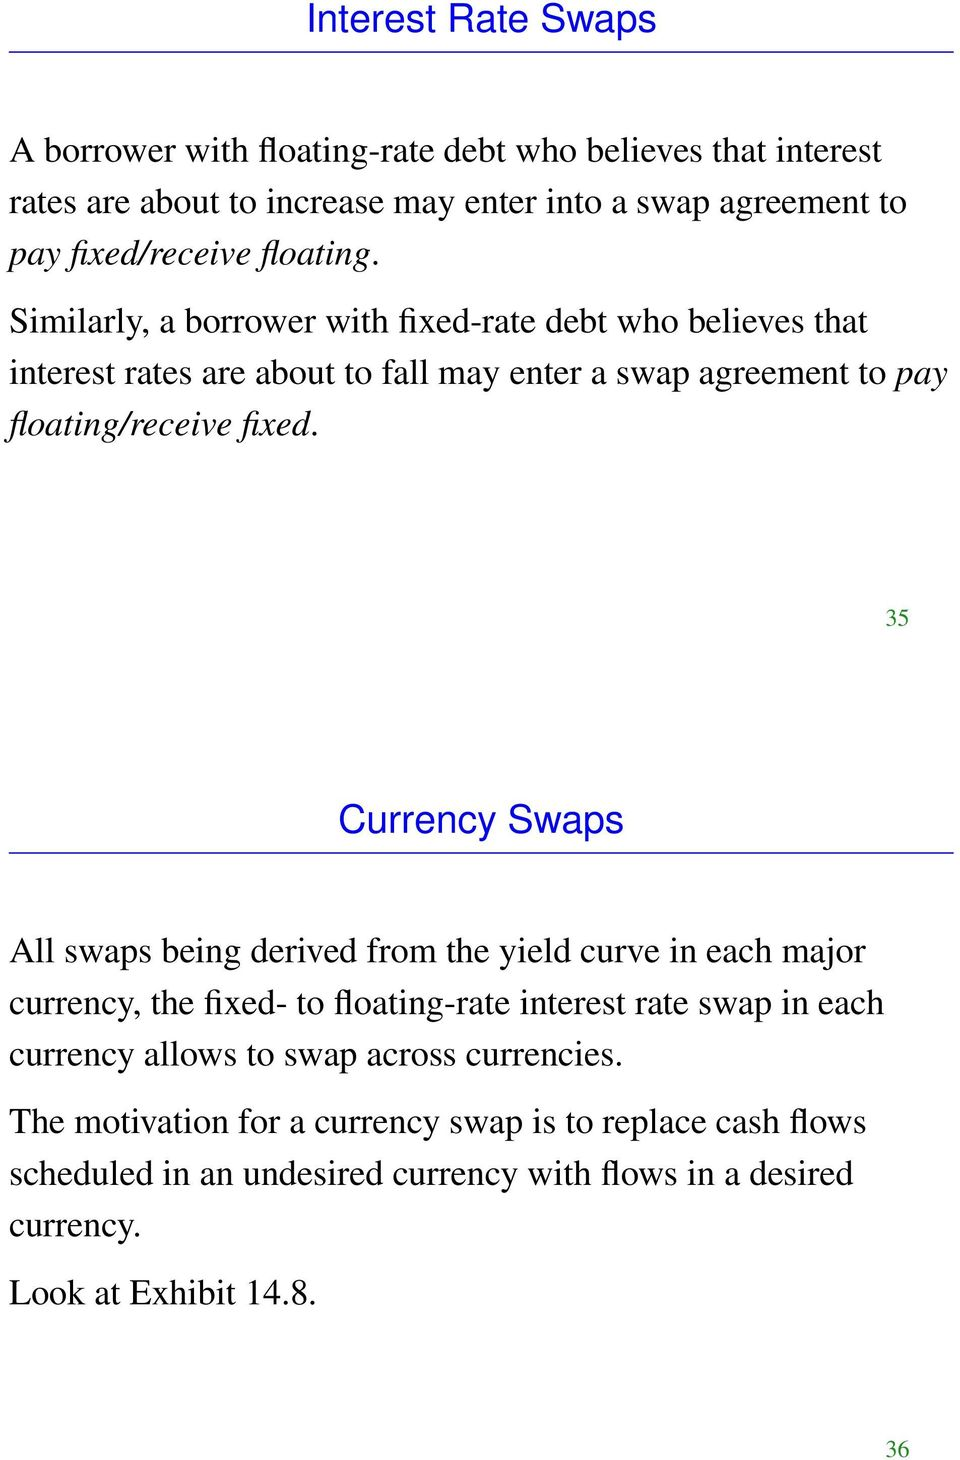 35 Currency Swaps All swaps being derived from the yield curve in each major currency, the fixed- to floating-rate interest rate swap in each currency allows to swap